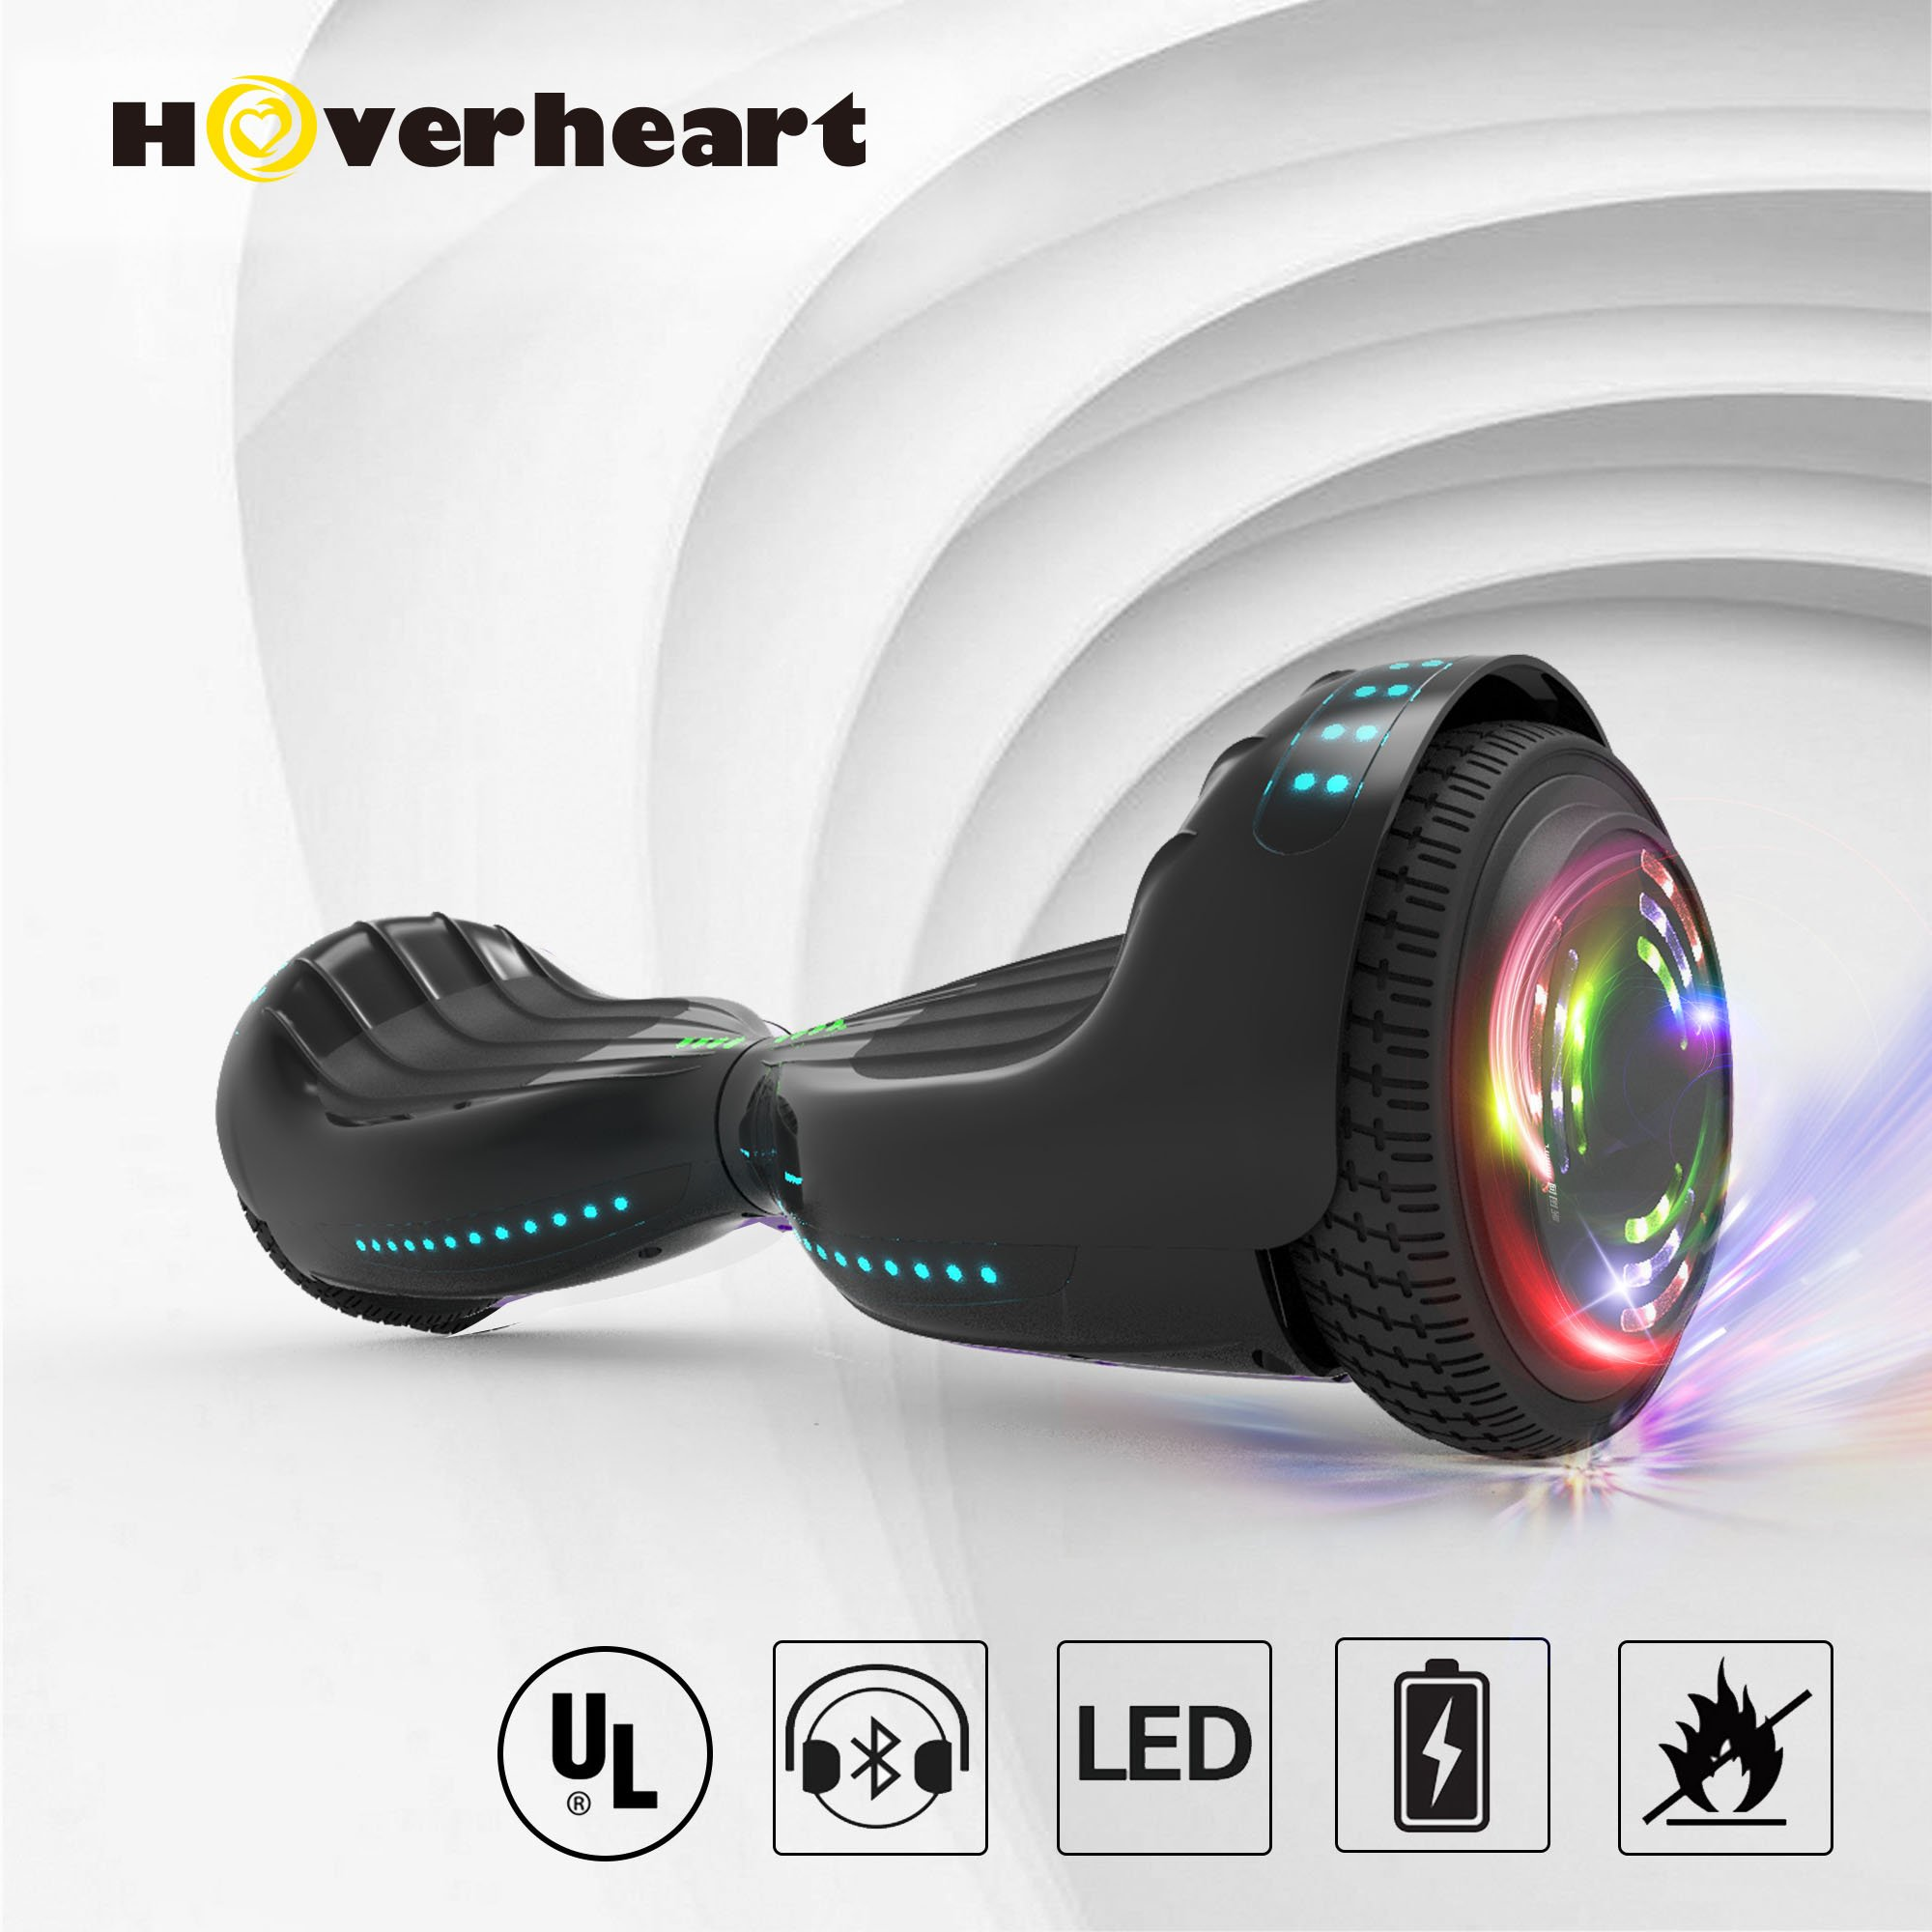 "Hoverboard UL 2272 Certified Flash Wheel 6.5"" Bluetooth Speaker with LED Light Self Balancing Wheel Electric Scooter"